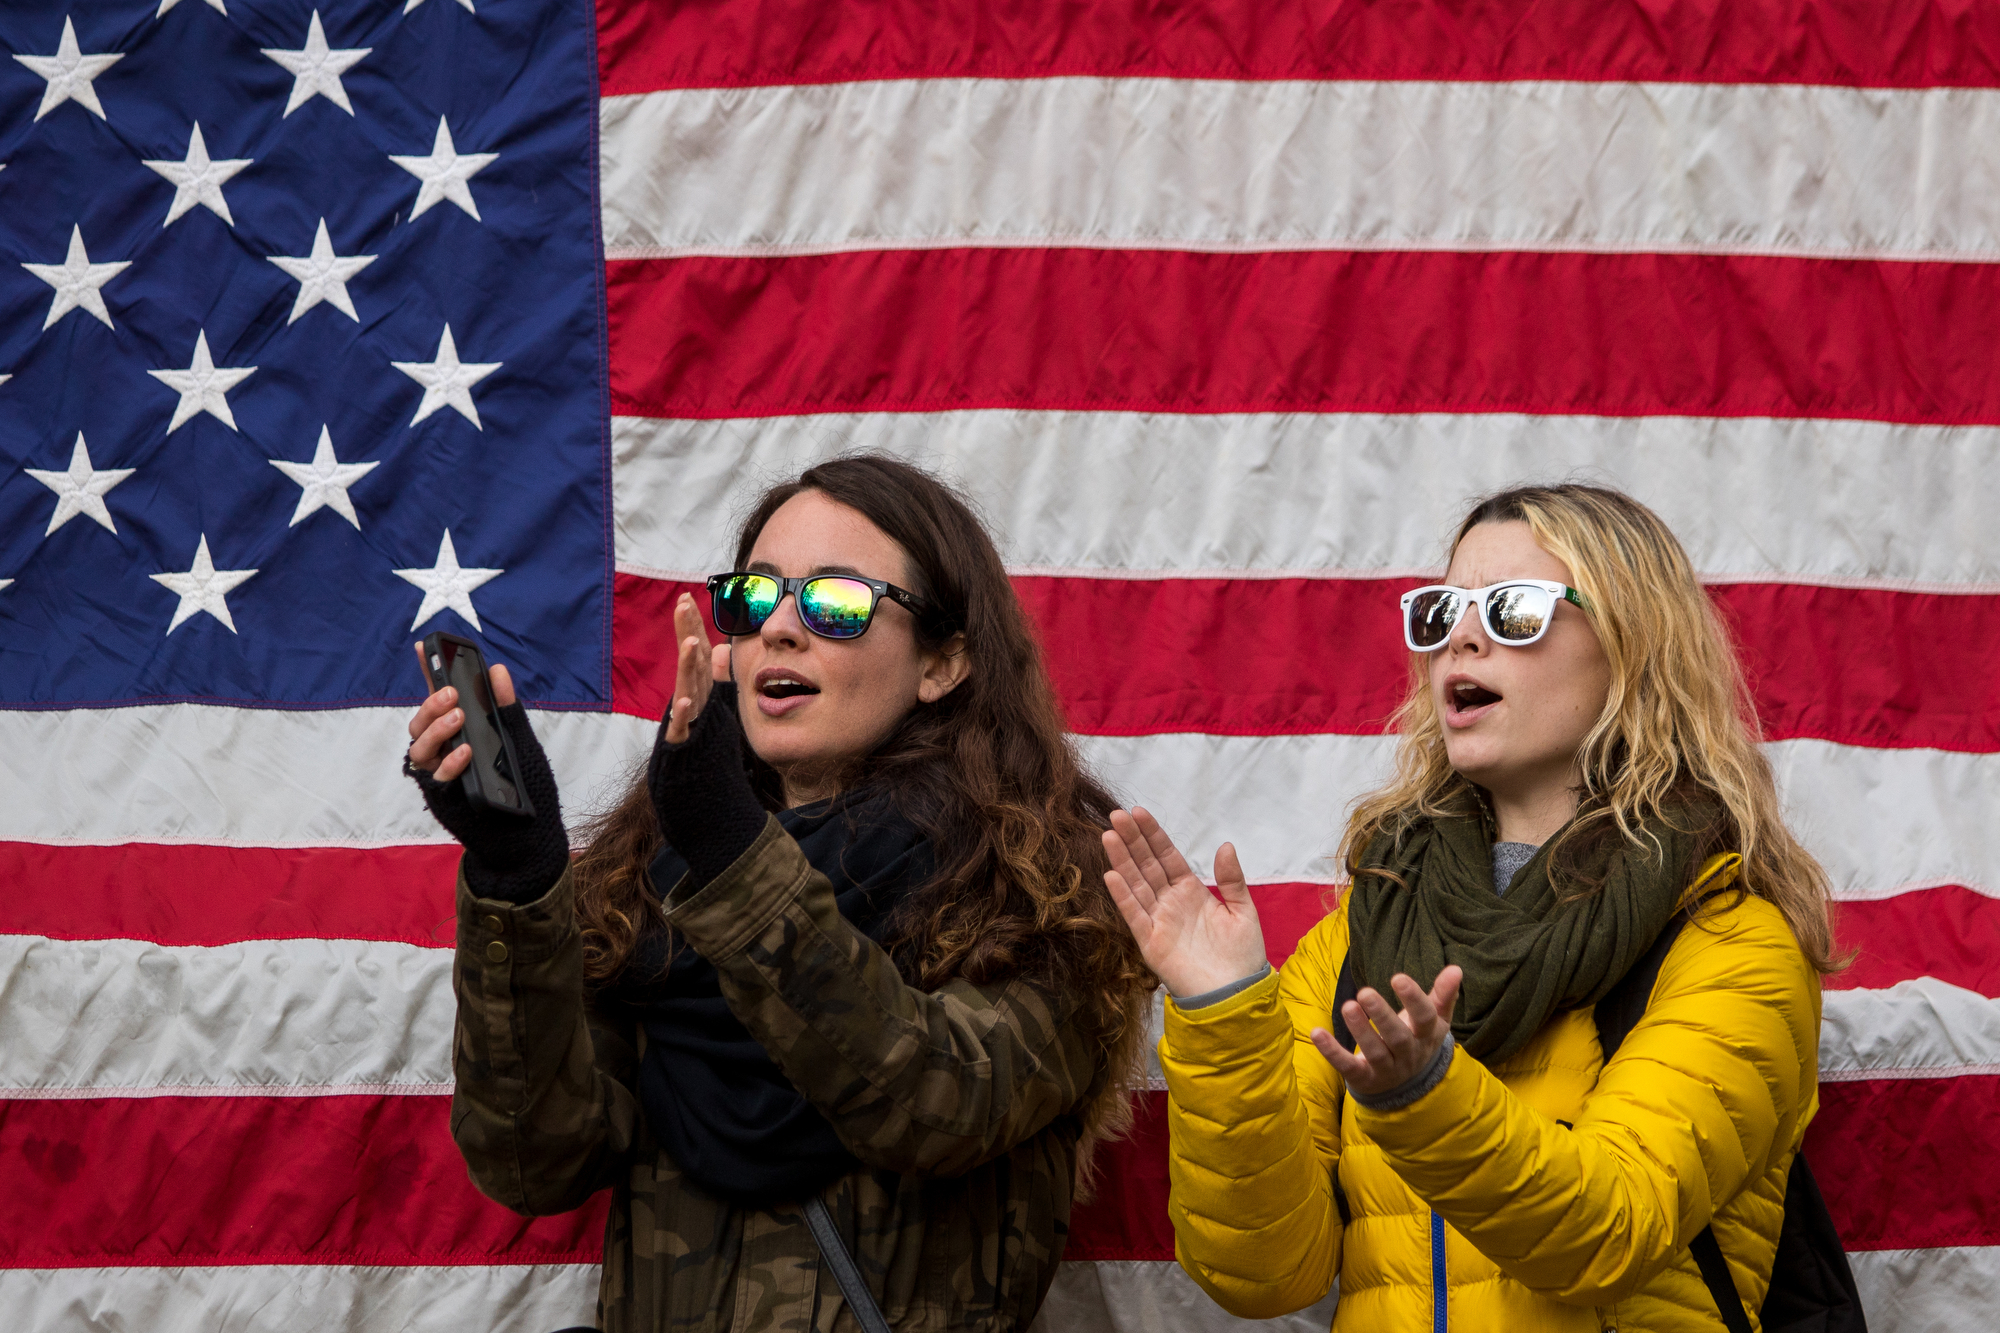 Mecca McNulty, left and Audrey Torma cheer at the Diag at the University of Michigan during the Women's March on Saturday, January 21, 2017.  The march was one of several throughout the country and drew over 6,000 people. Matt Weigand | The Ann Arbor News